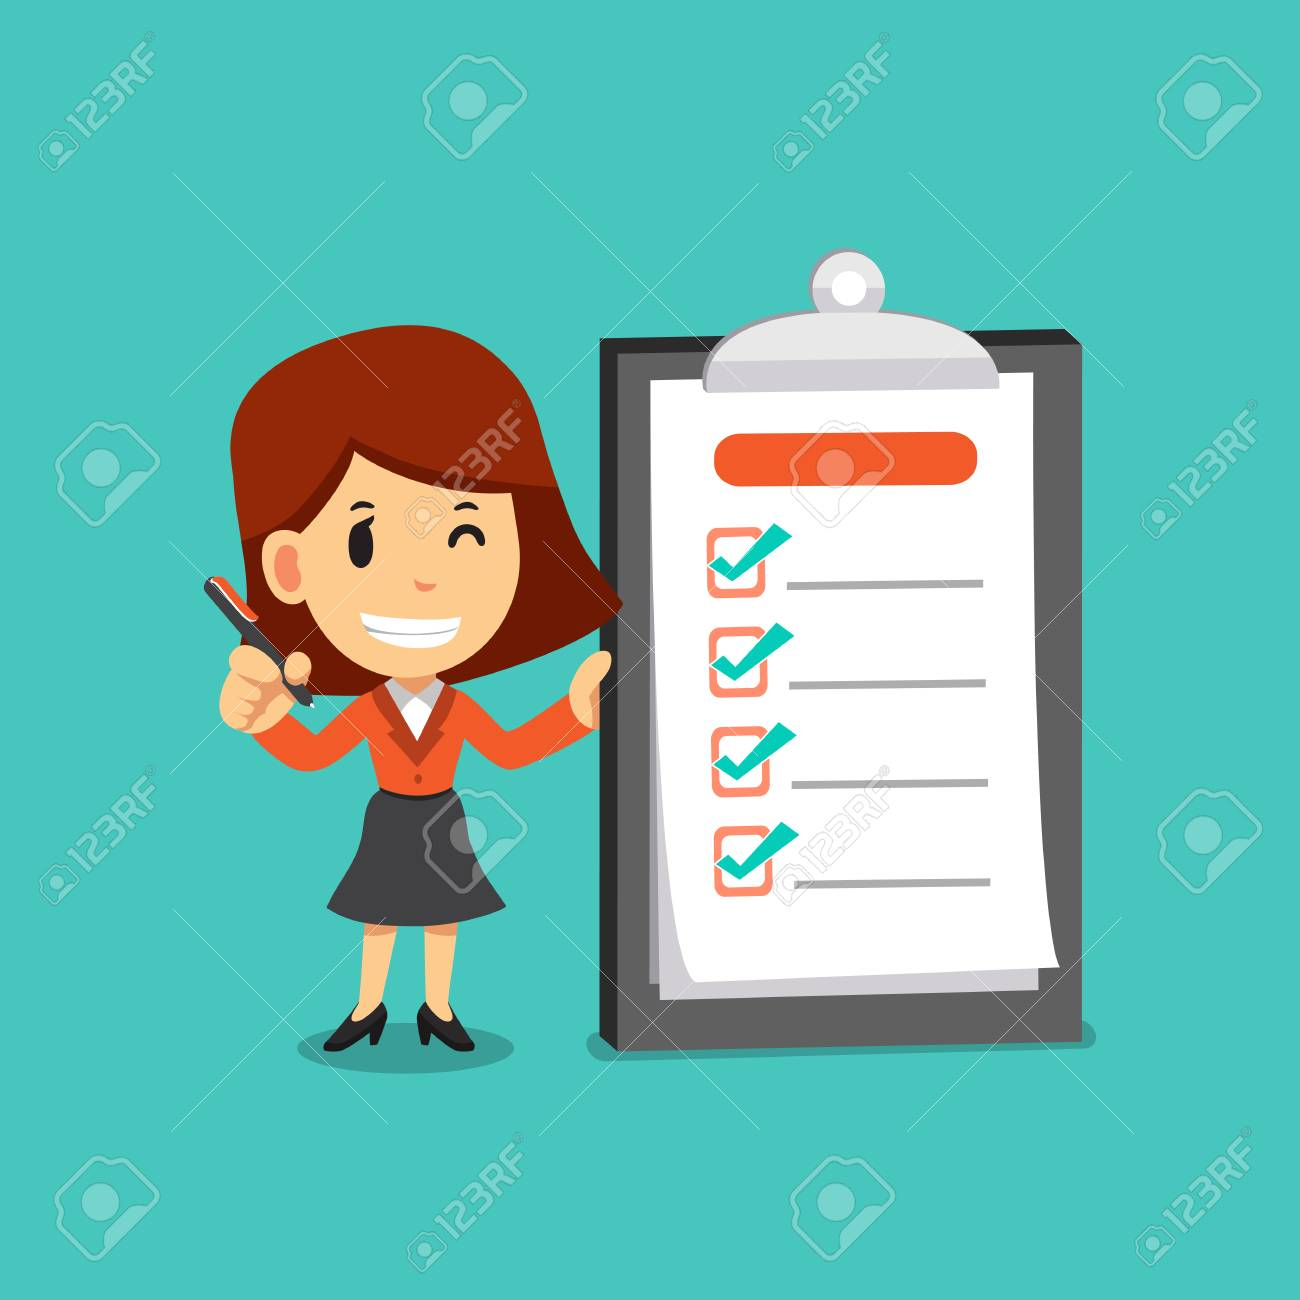 Vector cartoon businesswoman holding a pen and completed checklist on board - 105338144